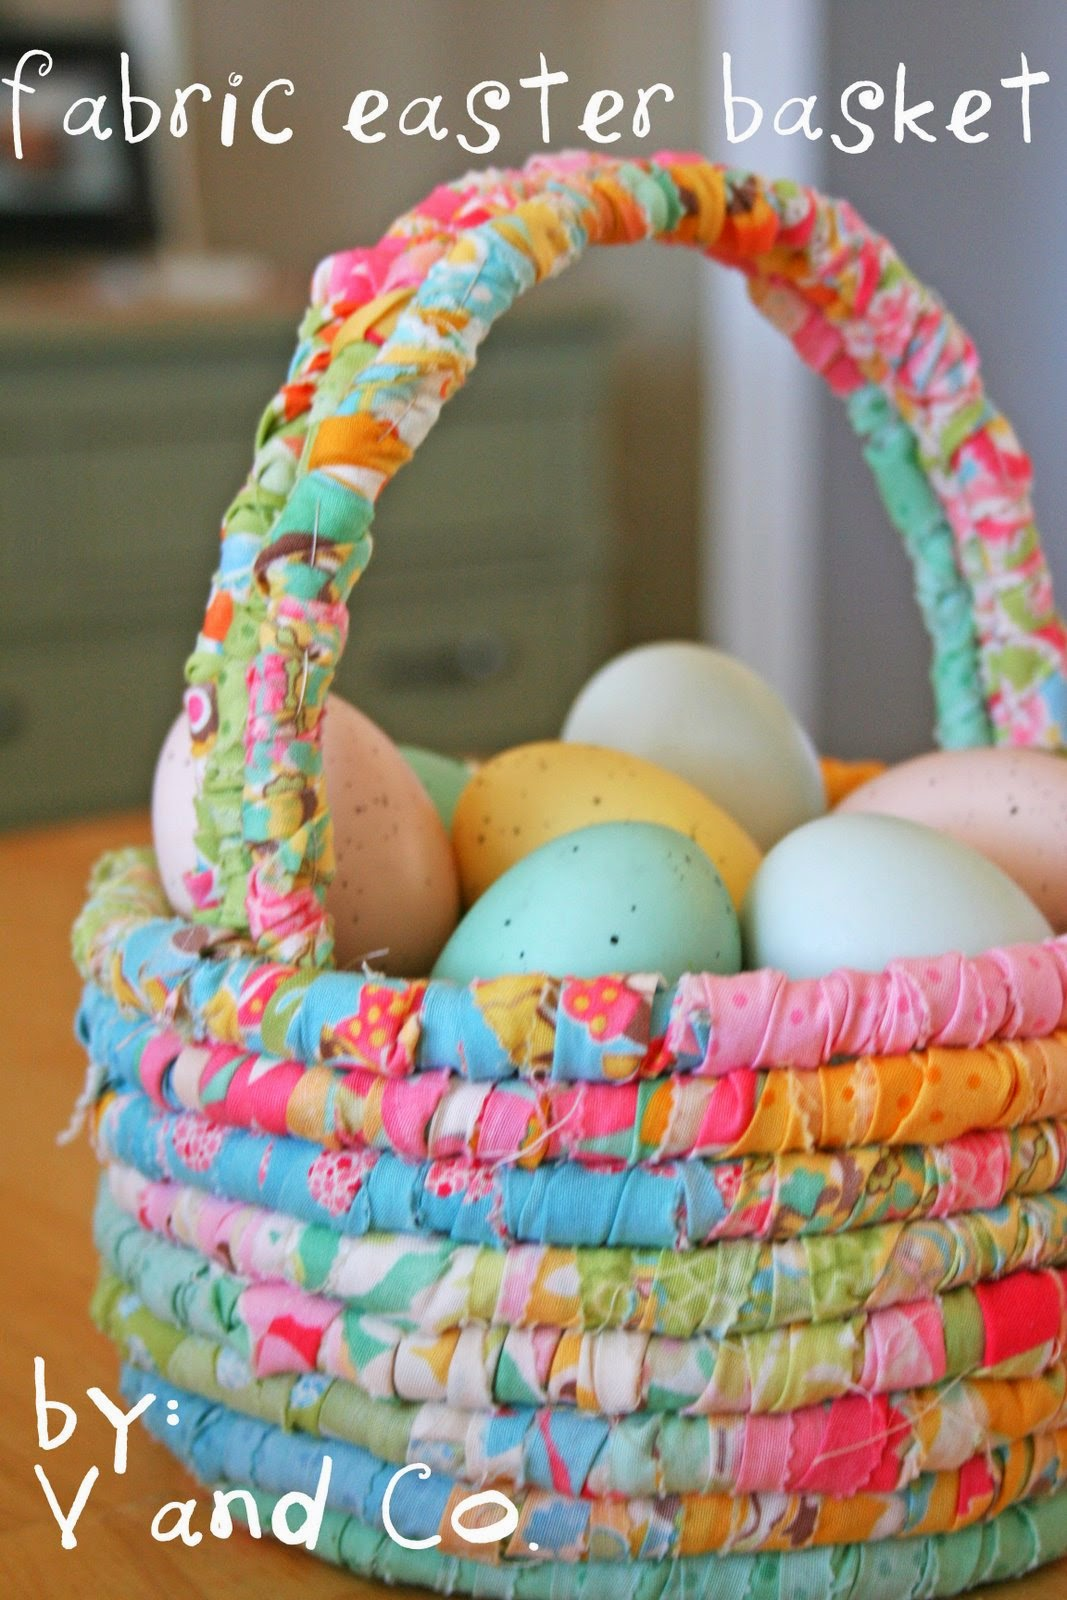 Fabriclovers blog spring break fabric craft ideas for Fabric crafts to make